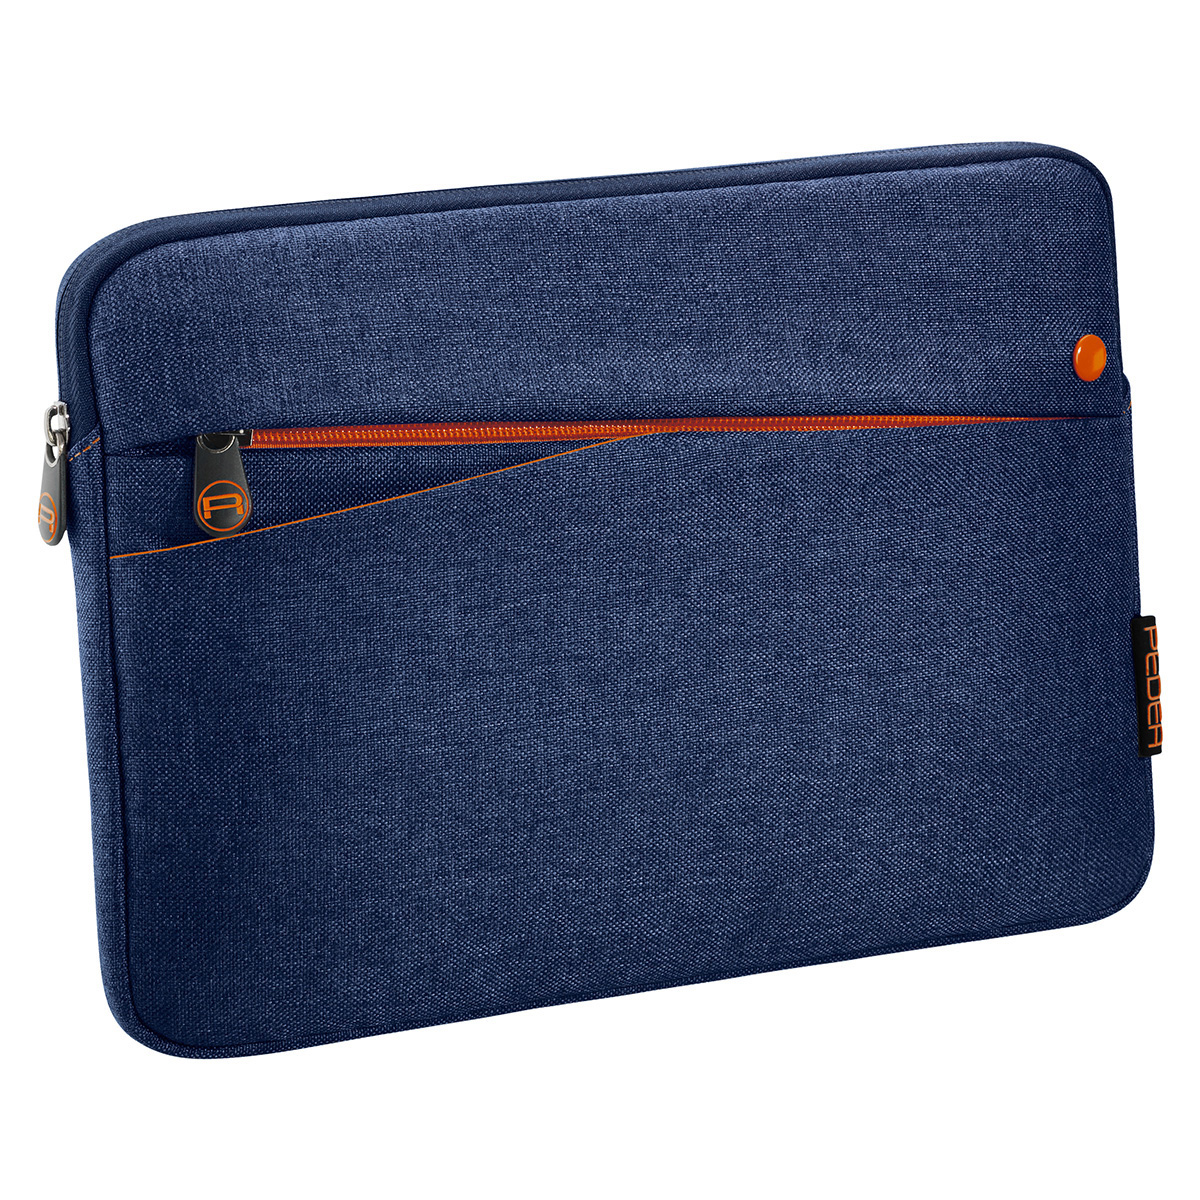 "PEDEA Tablet-Tasche 10,1"" (25,7cm) blau ""Fashion"""